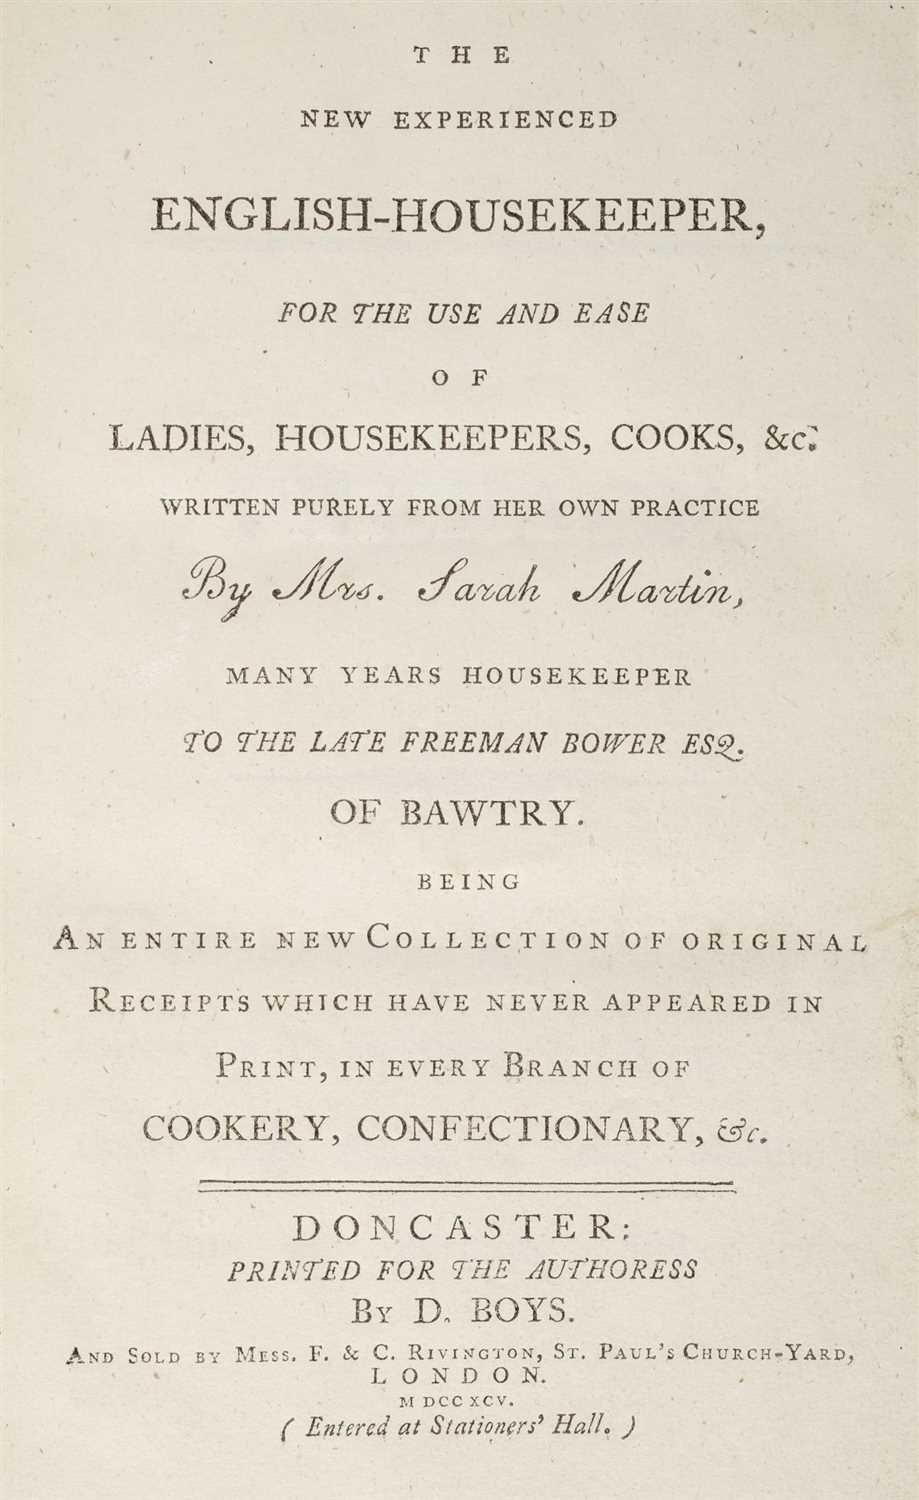 Lot 319-Martin (Sarah). The New Experienced English-Housekeeper, Doncaster, 1795